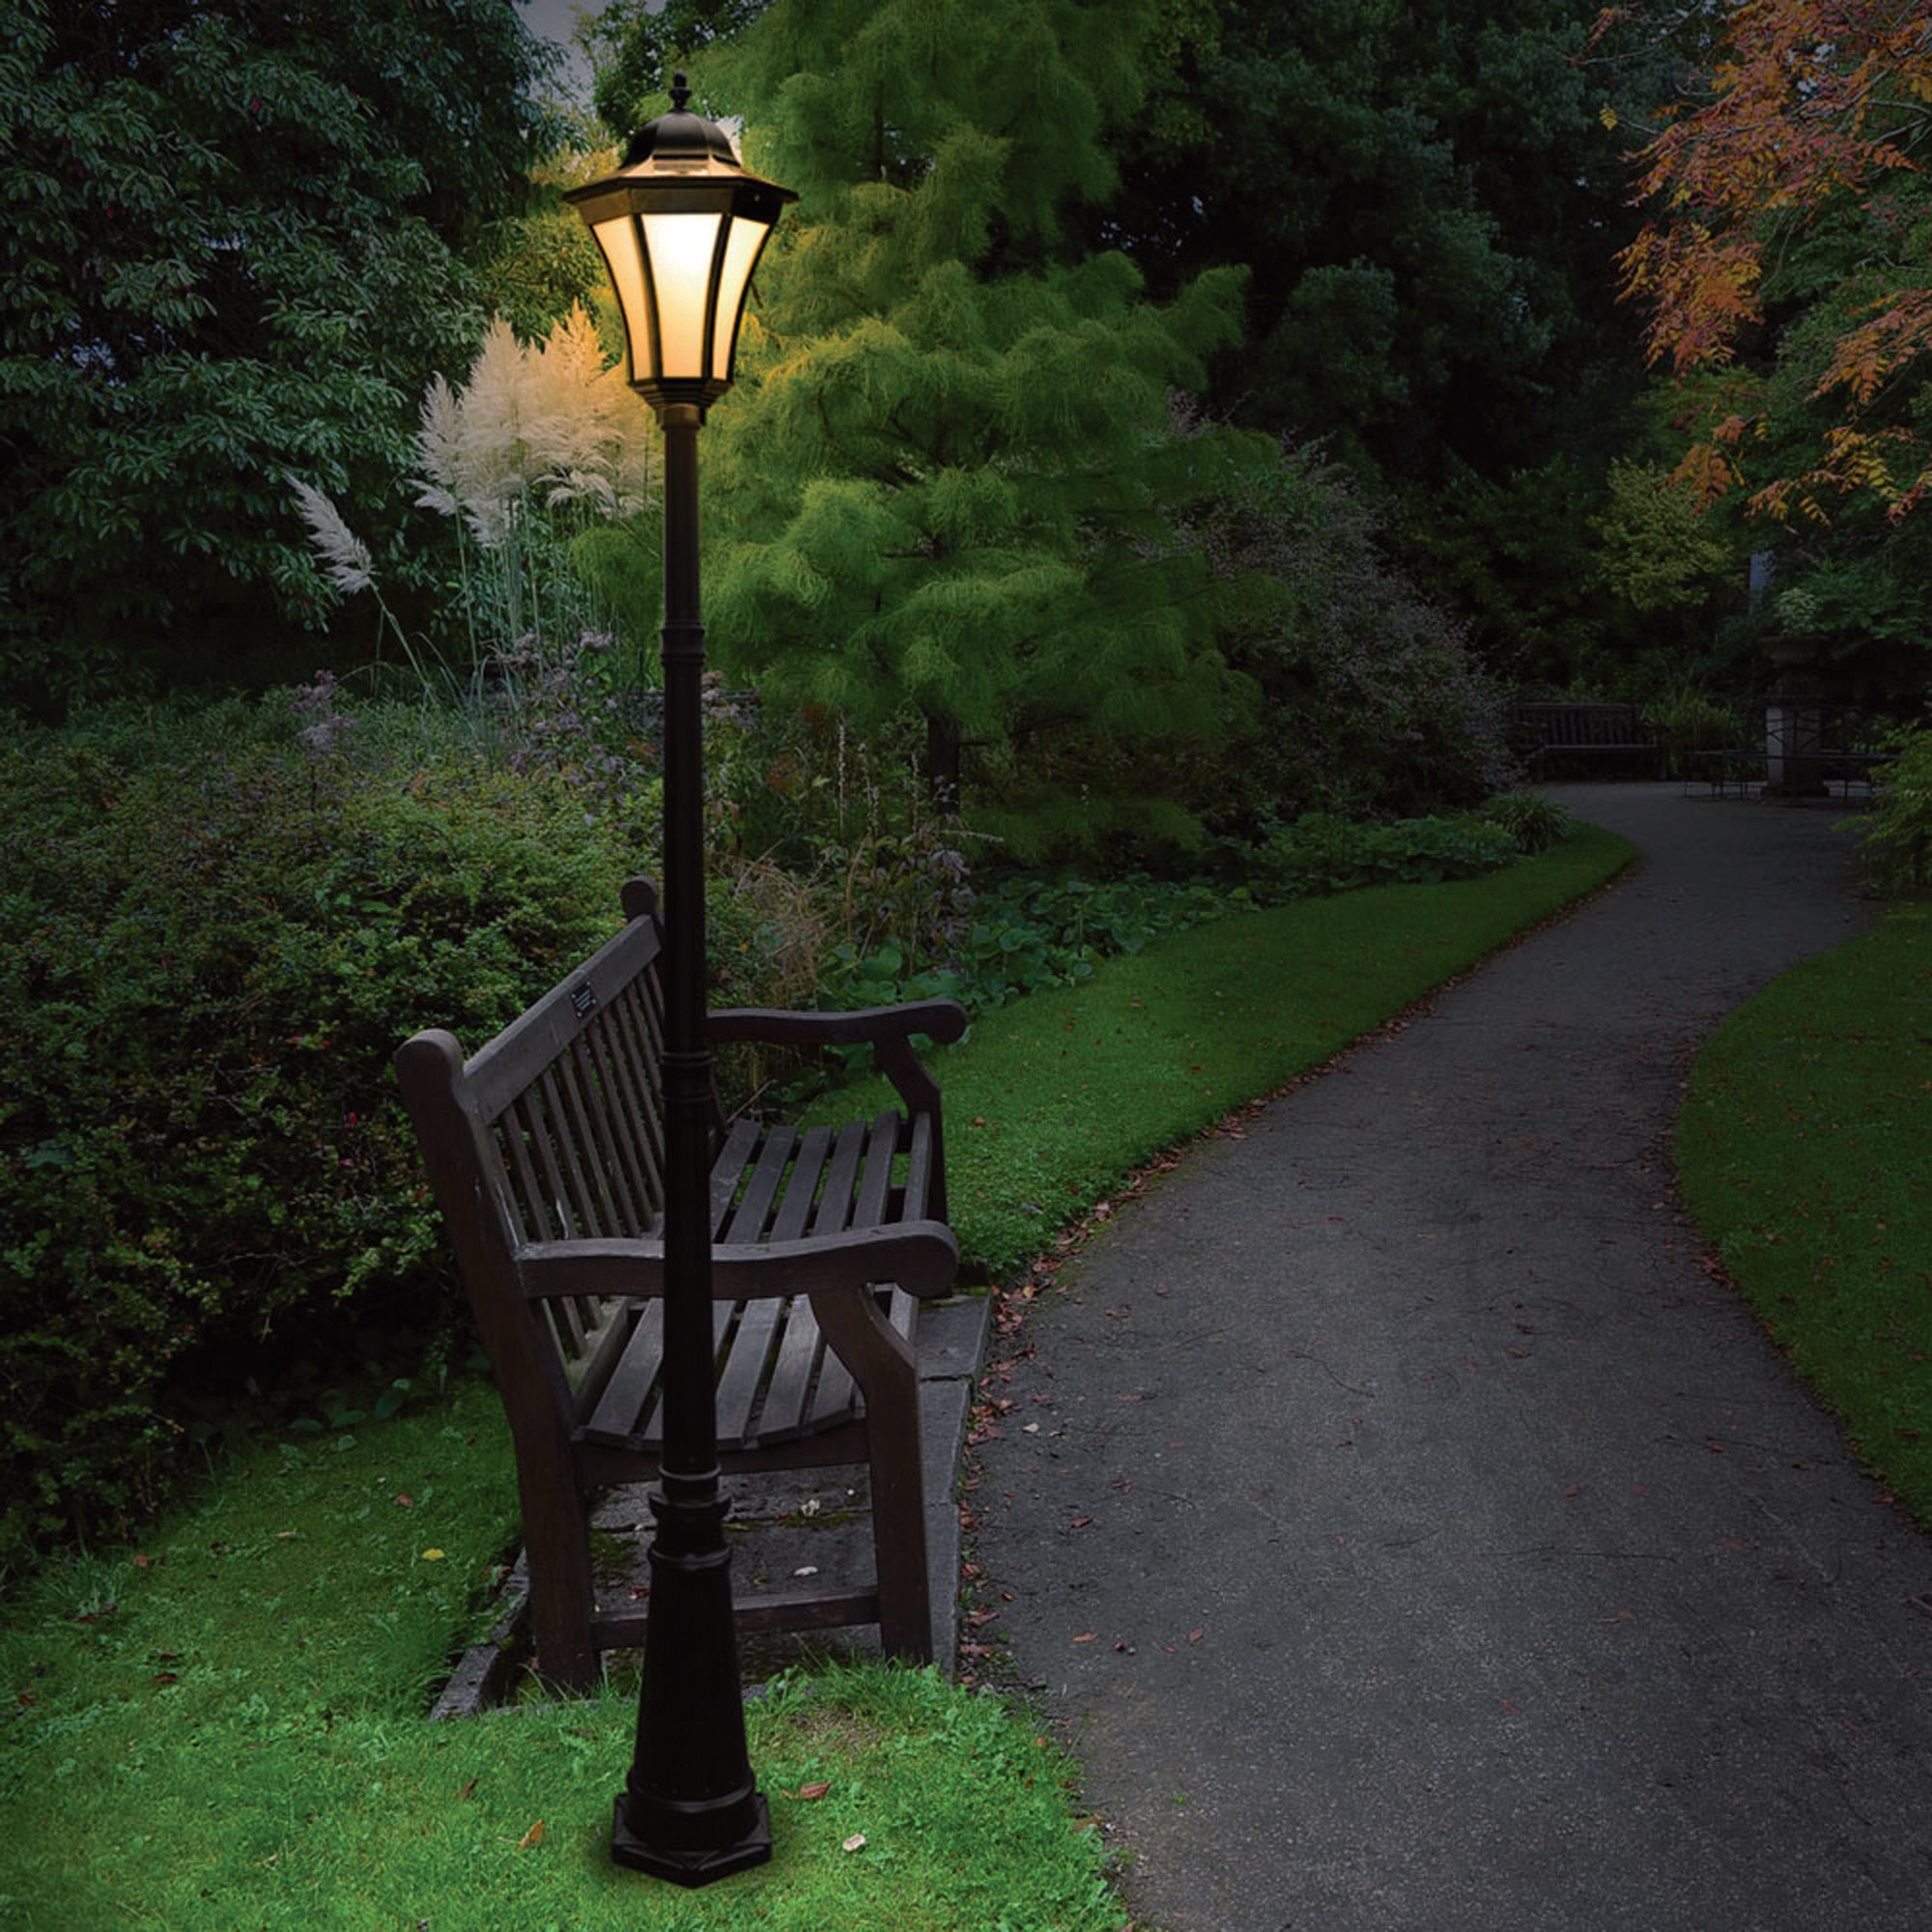 Naturepower Essex Solar Post Lamp 7ft H 10 Leds 40 Lumen Output Solar Lighting Solar Lamp Post Rustic Outdoor Lighting Outdoor Lamp Posts